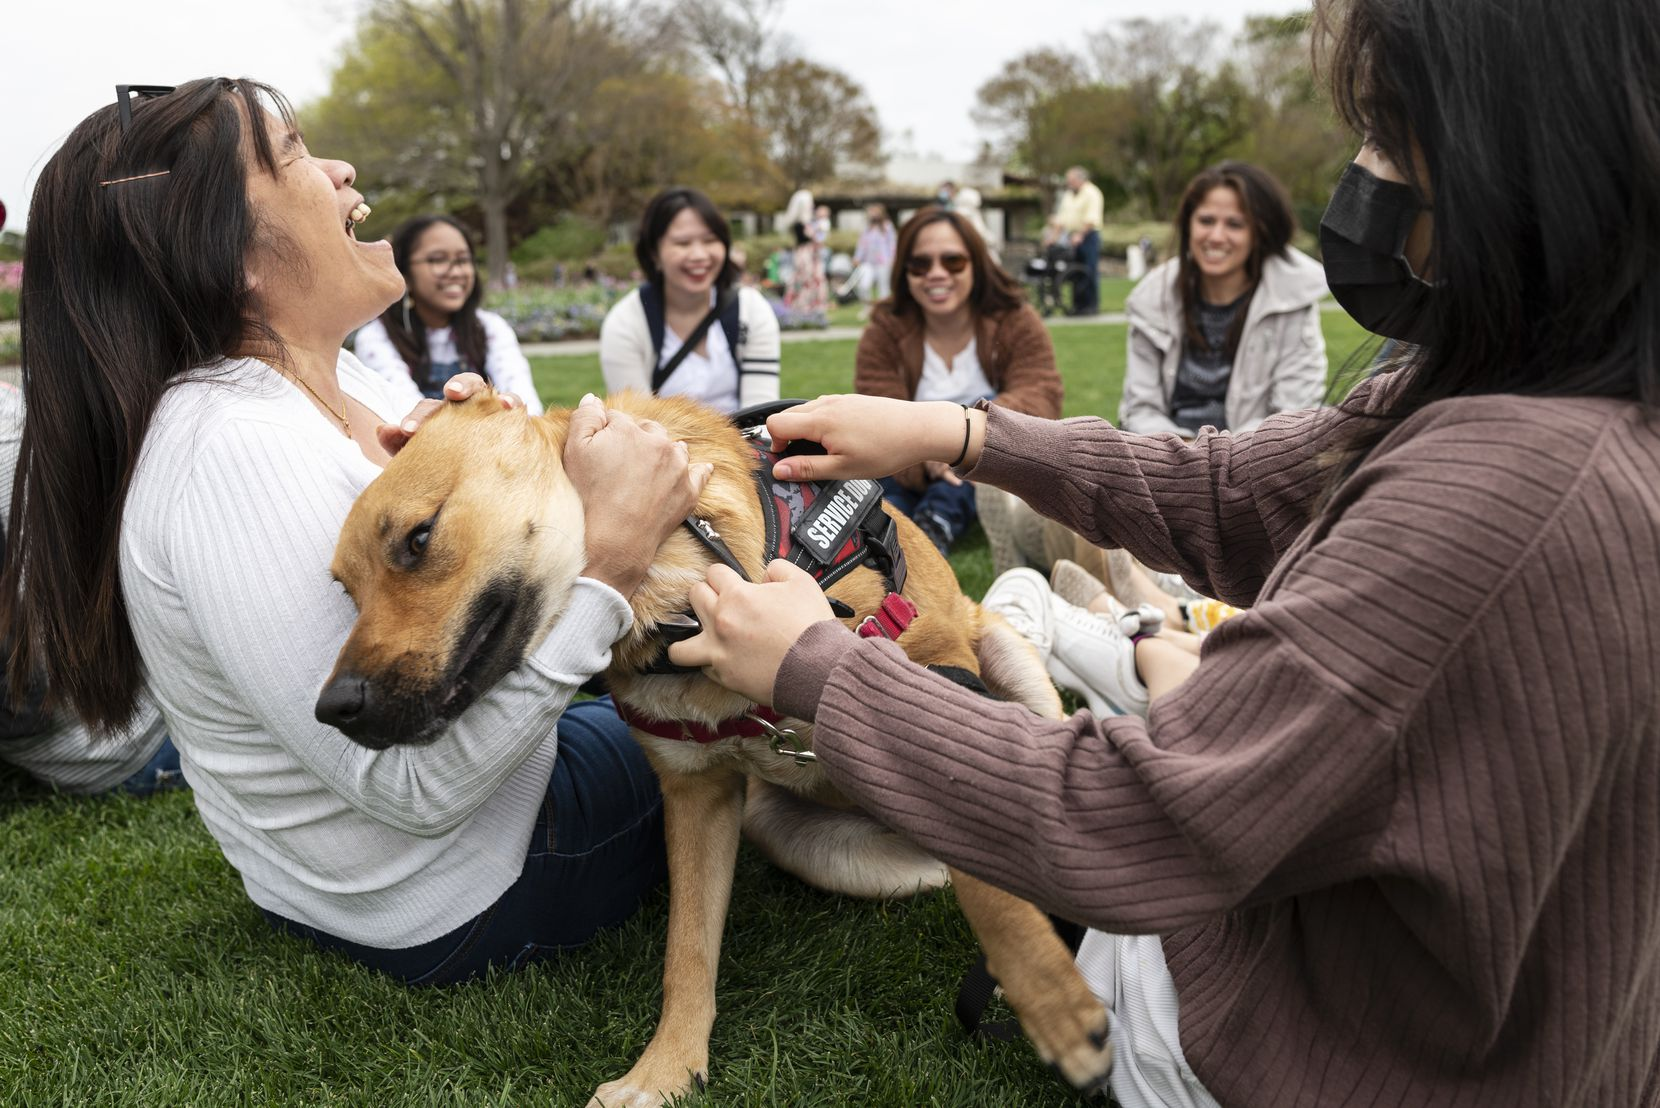 Janette Ritual, left, and Danielle Morales, both of San Antonio, play with a dog named Kenai as they enjoyed visiting with family for the Easter weekend at the Dallas Arboretum, on Saturday, April 03, 2021 in Dallas.